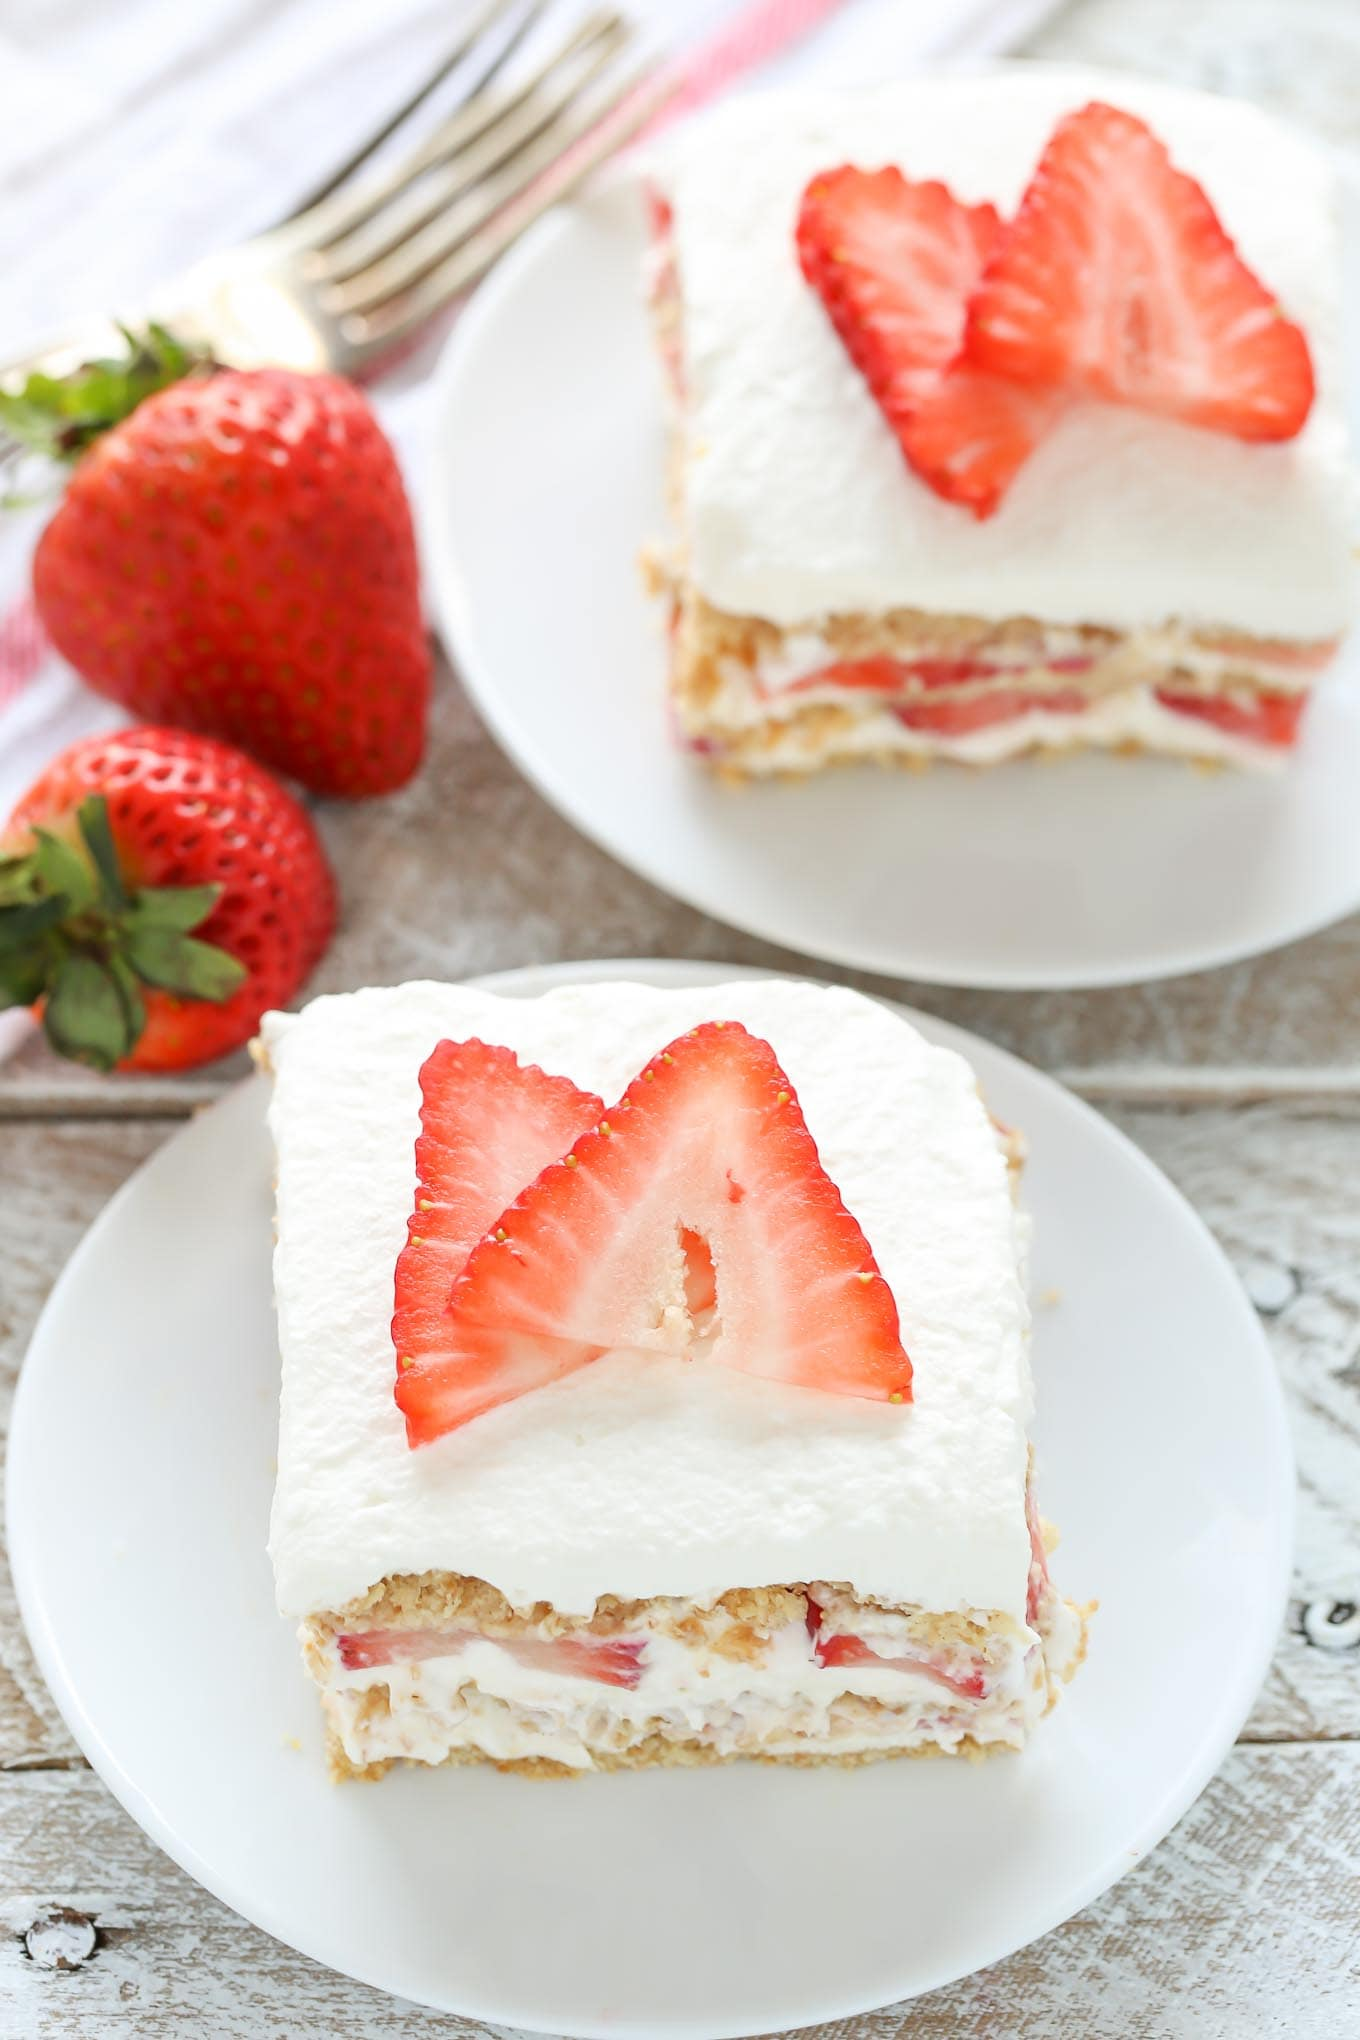 Two slices of strawberry icebox cake on white dessert plates. Two fresh berries and a fork rest on the side.